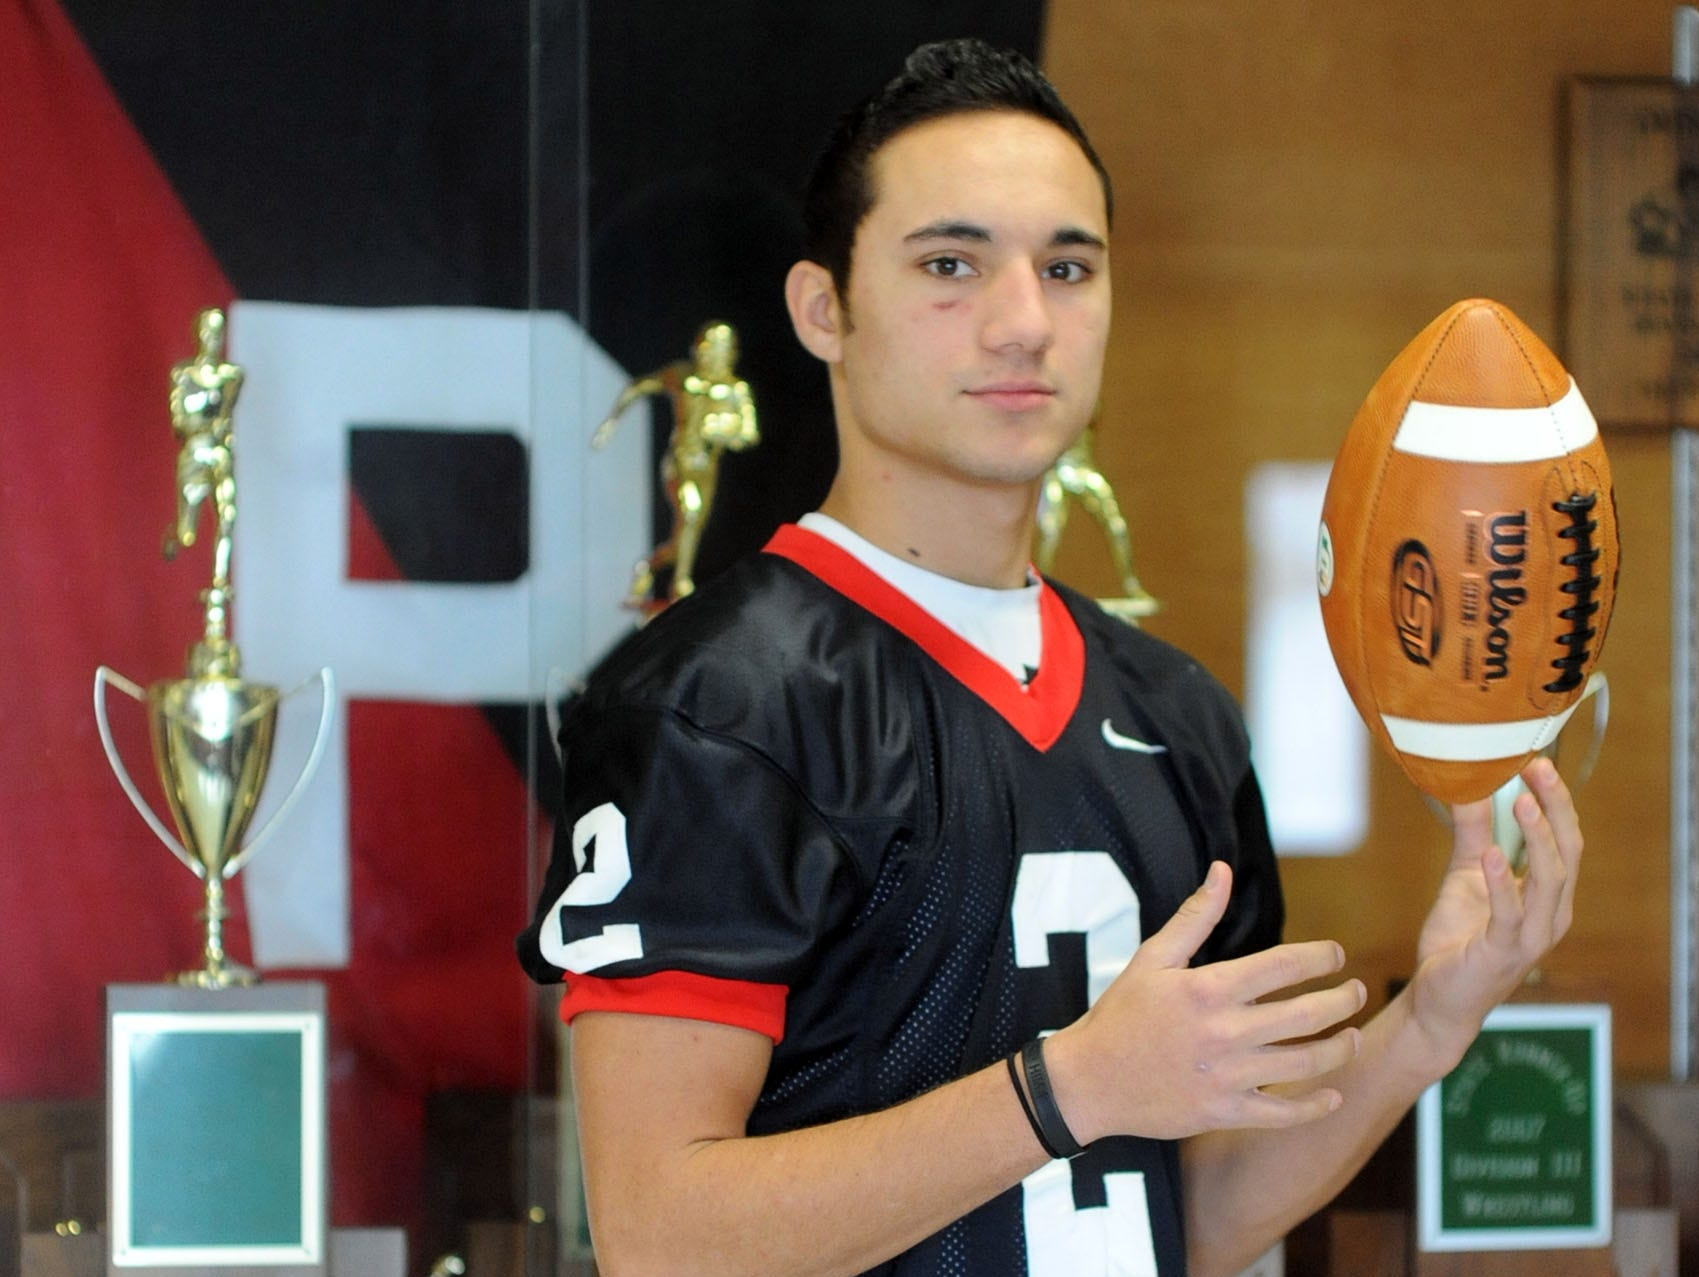 Pleasant High School senior football player Ryan Maniaci, who set a pair of school passing records this season, is the Fahey Bank Male Athlete of the Month for November.